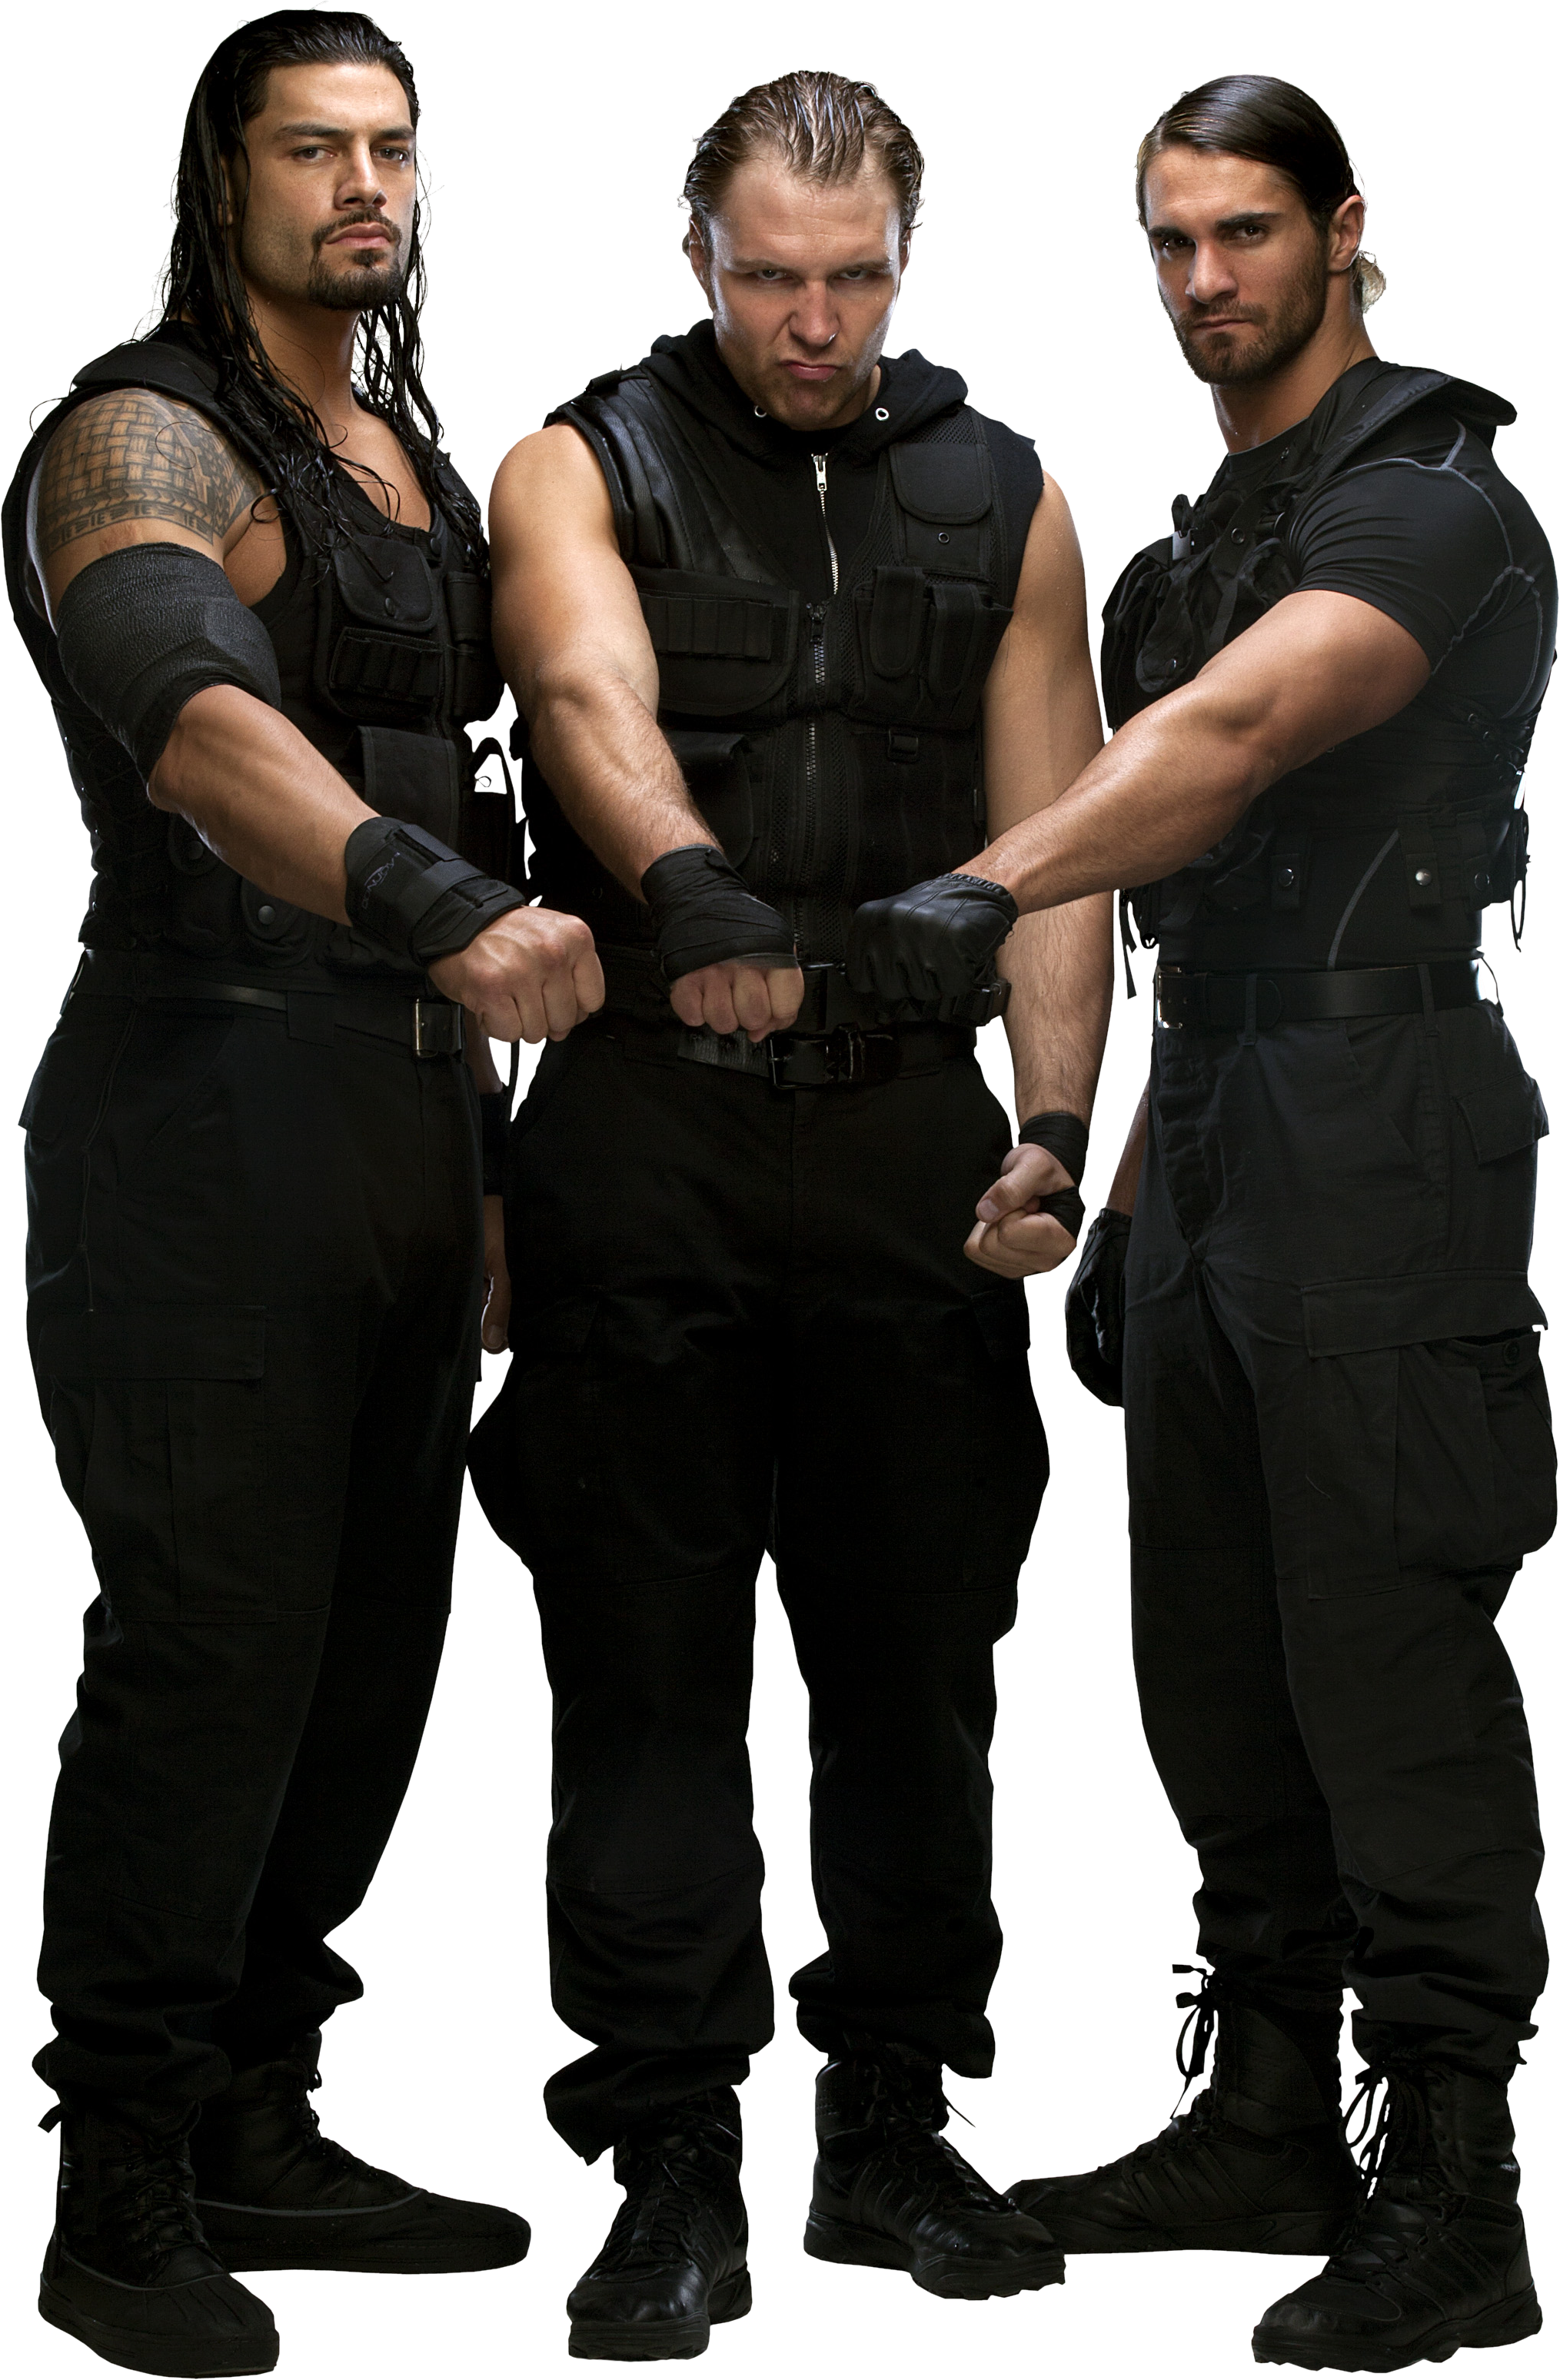 The shield png. World of smash bros